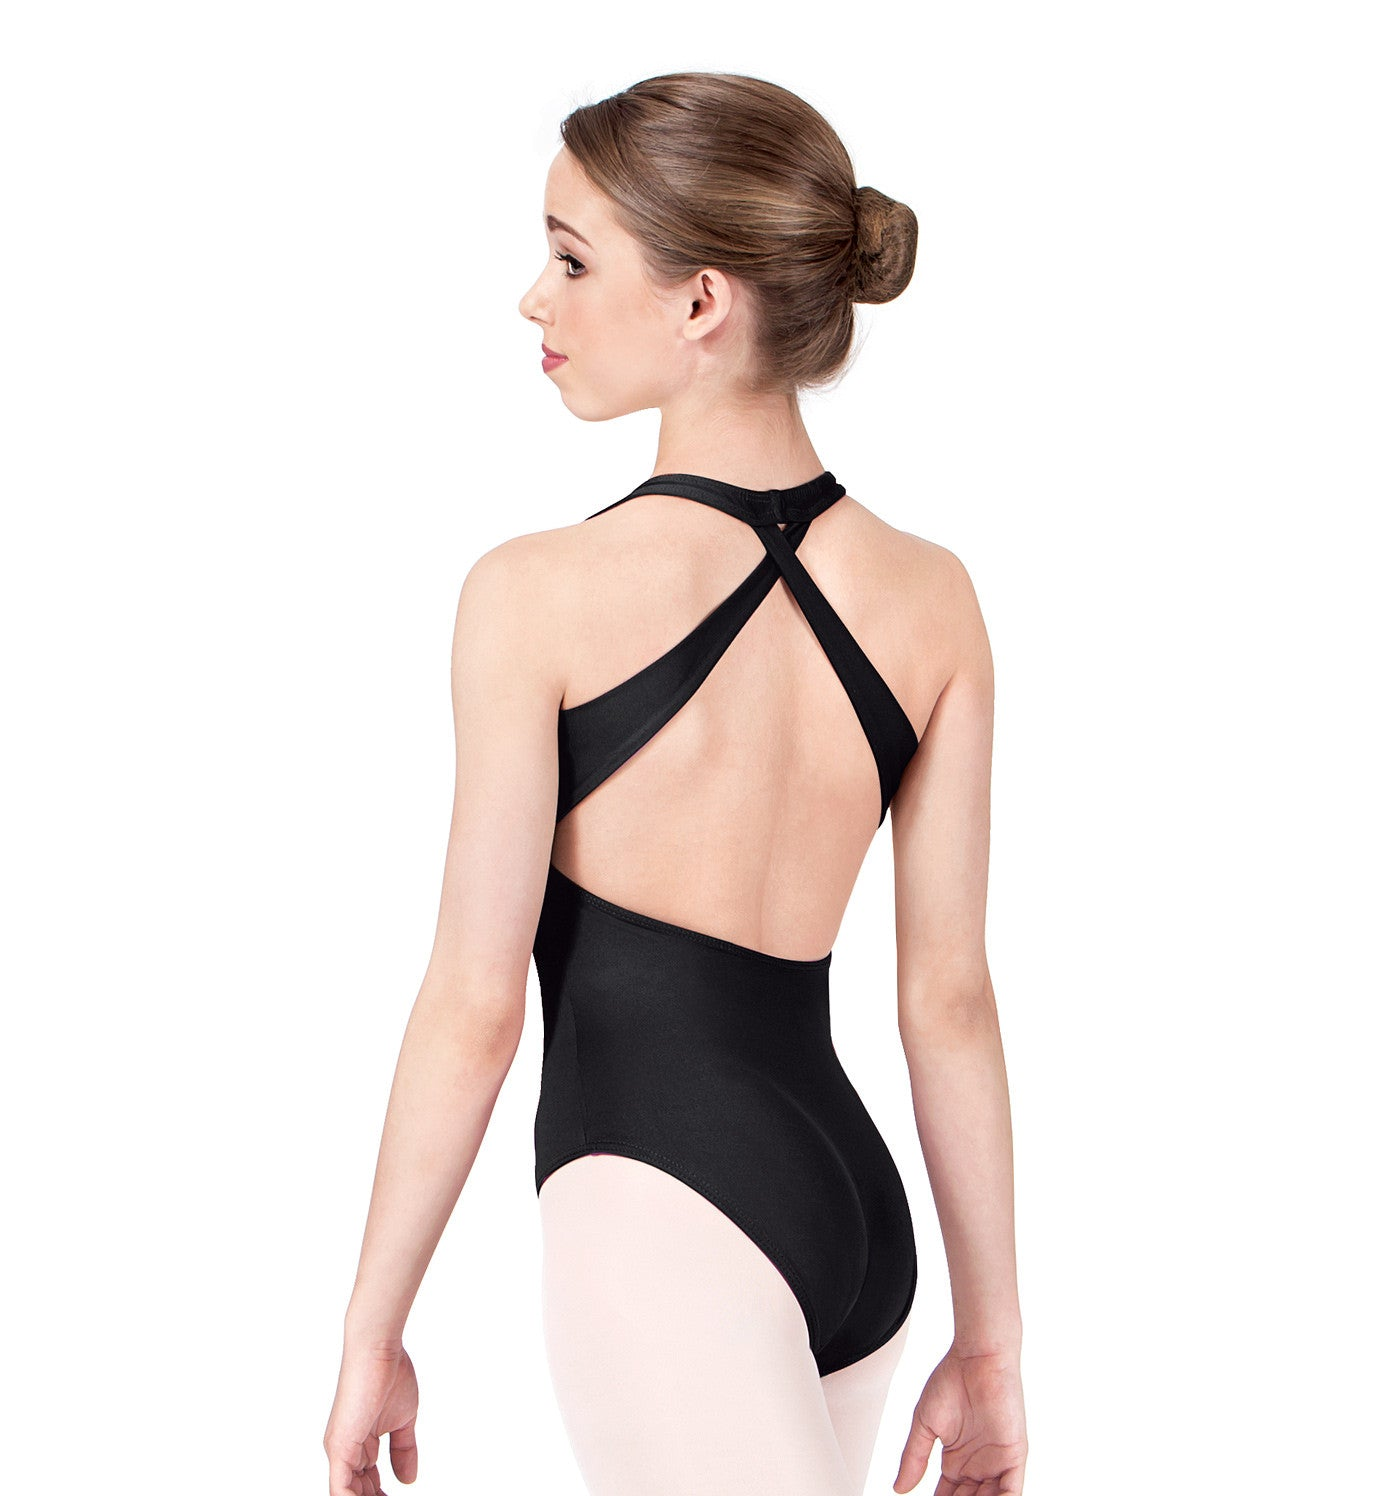 Motionwear Adult Cross Back Halter Leotard for Women